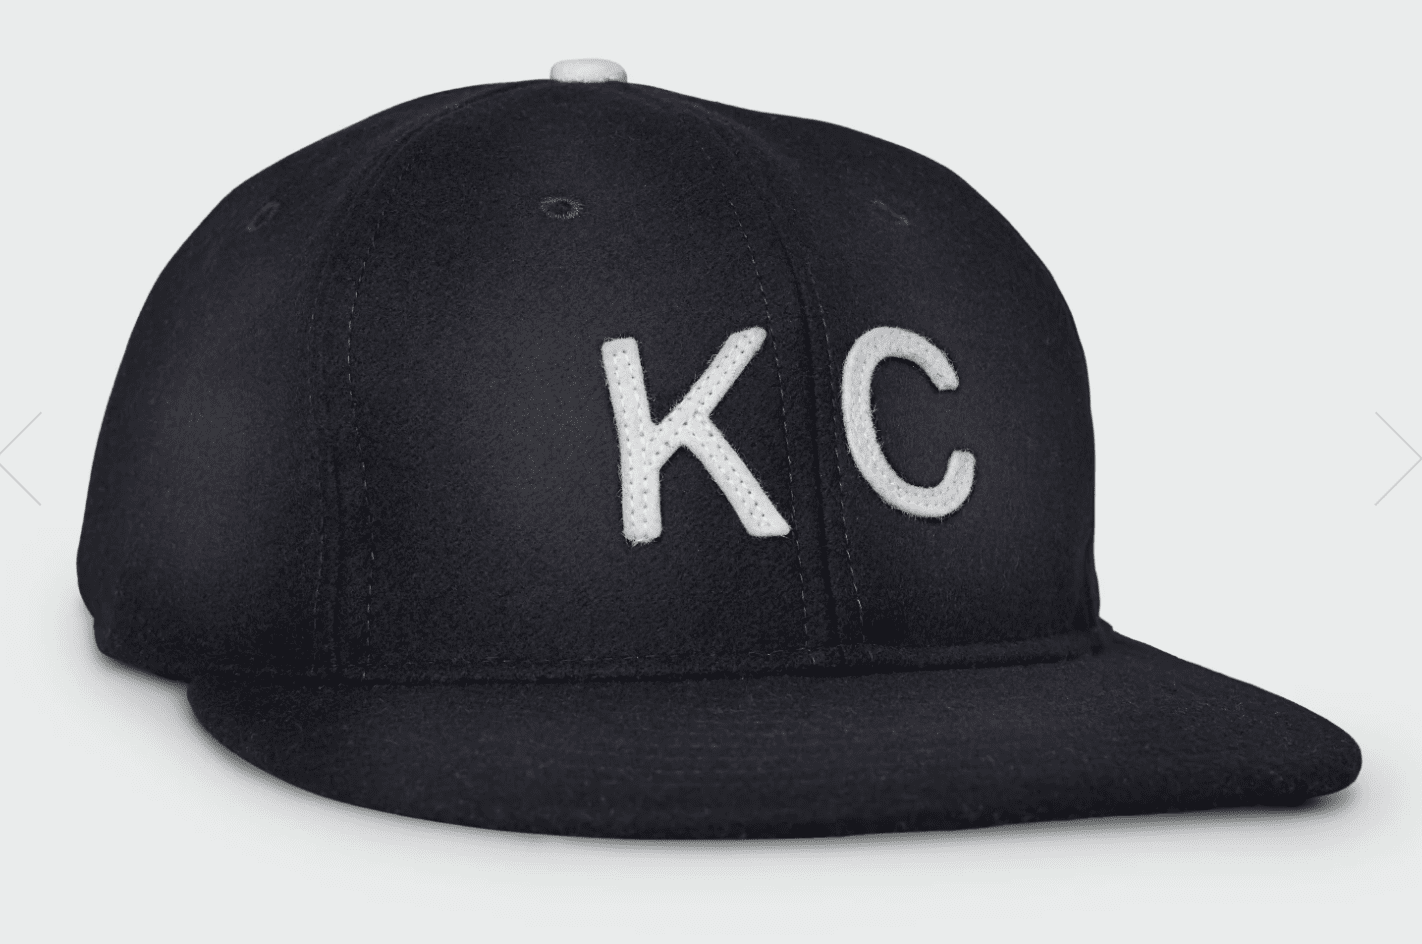 KC Vintage Wool Flatbill Hat Black